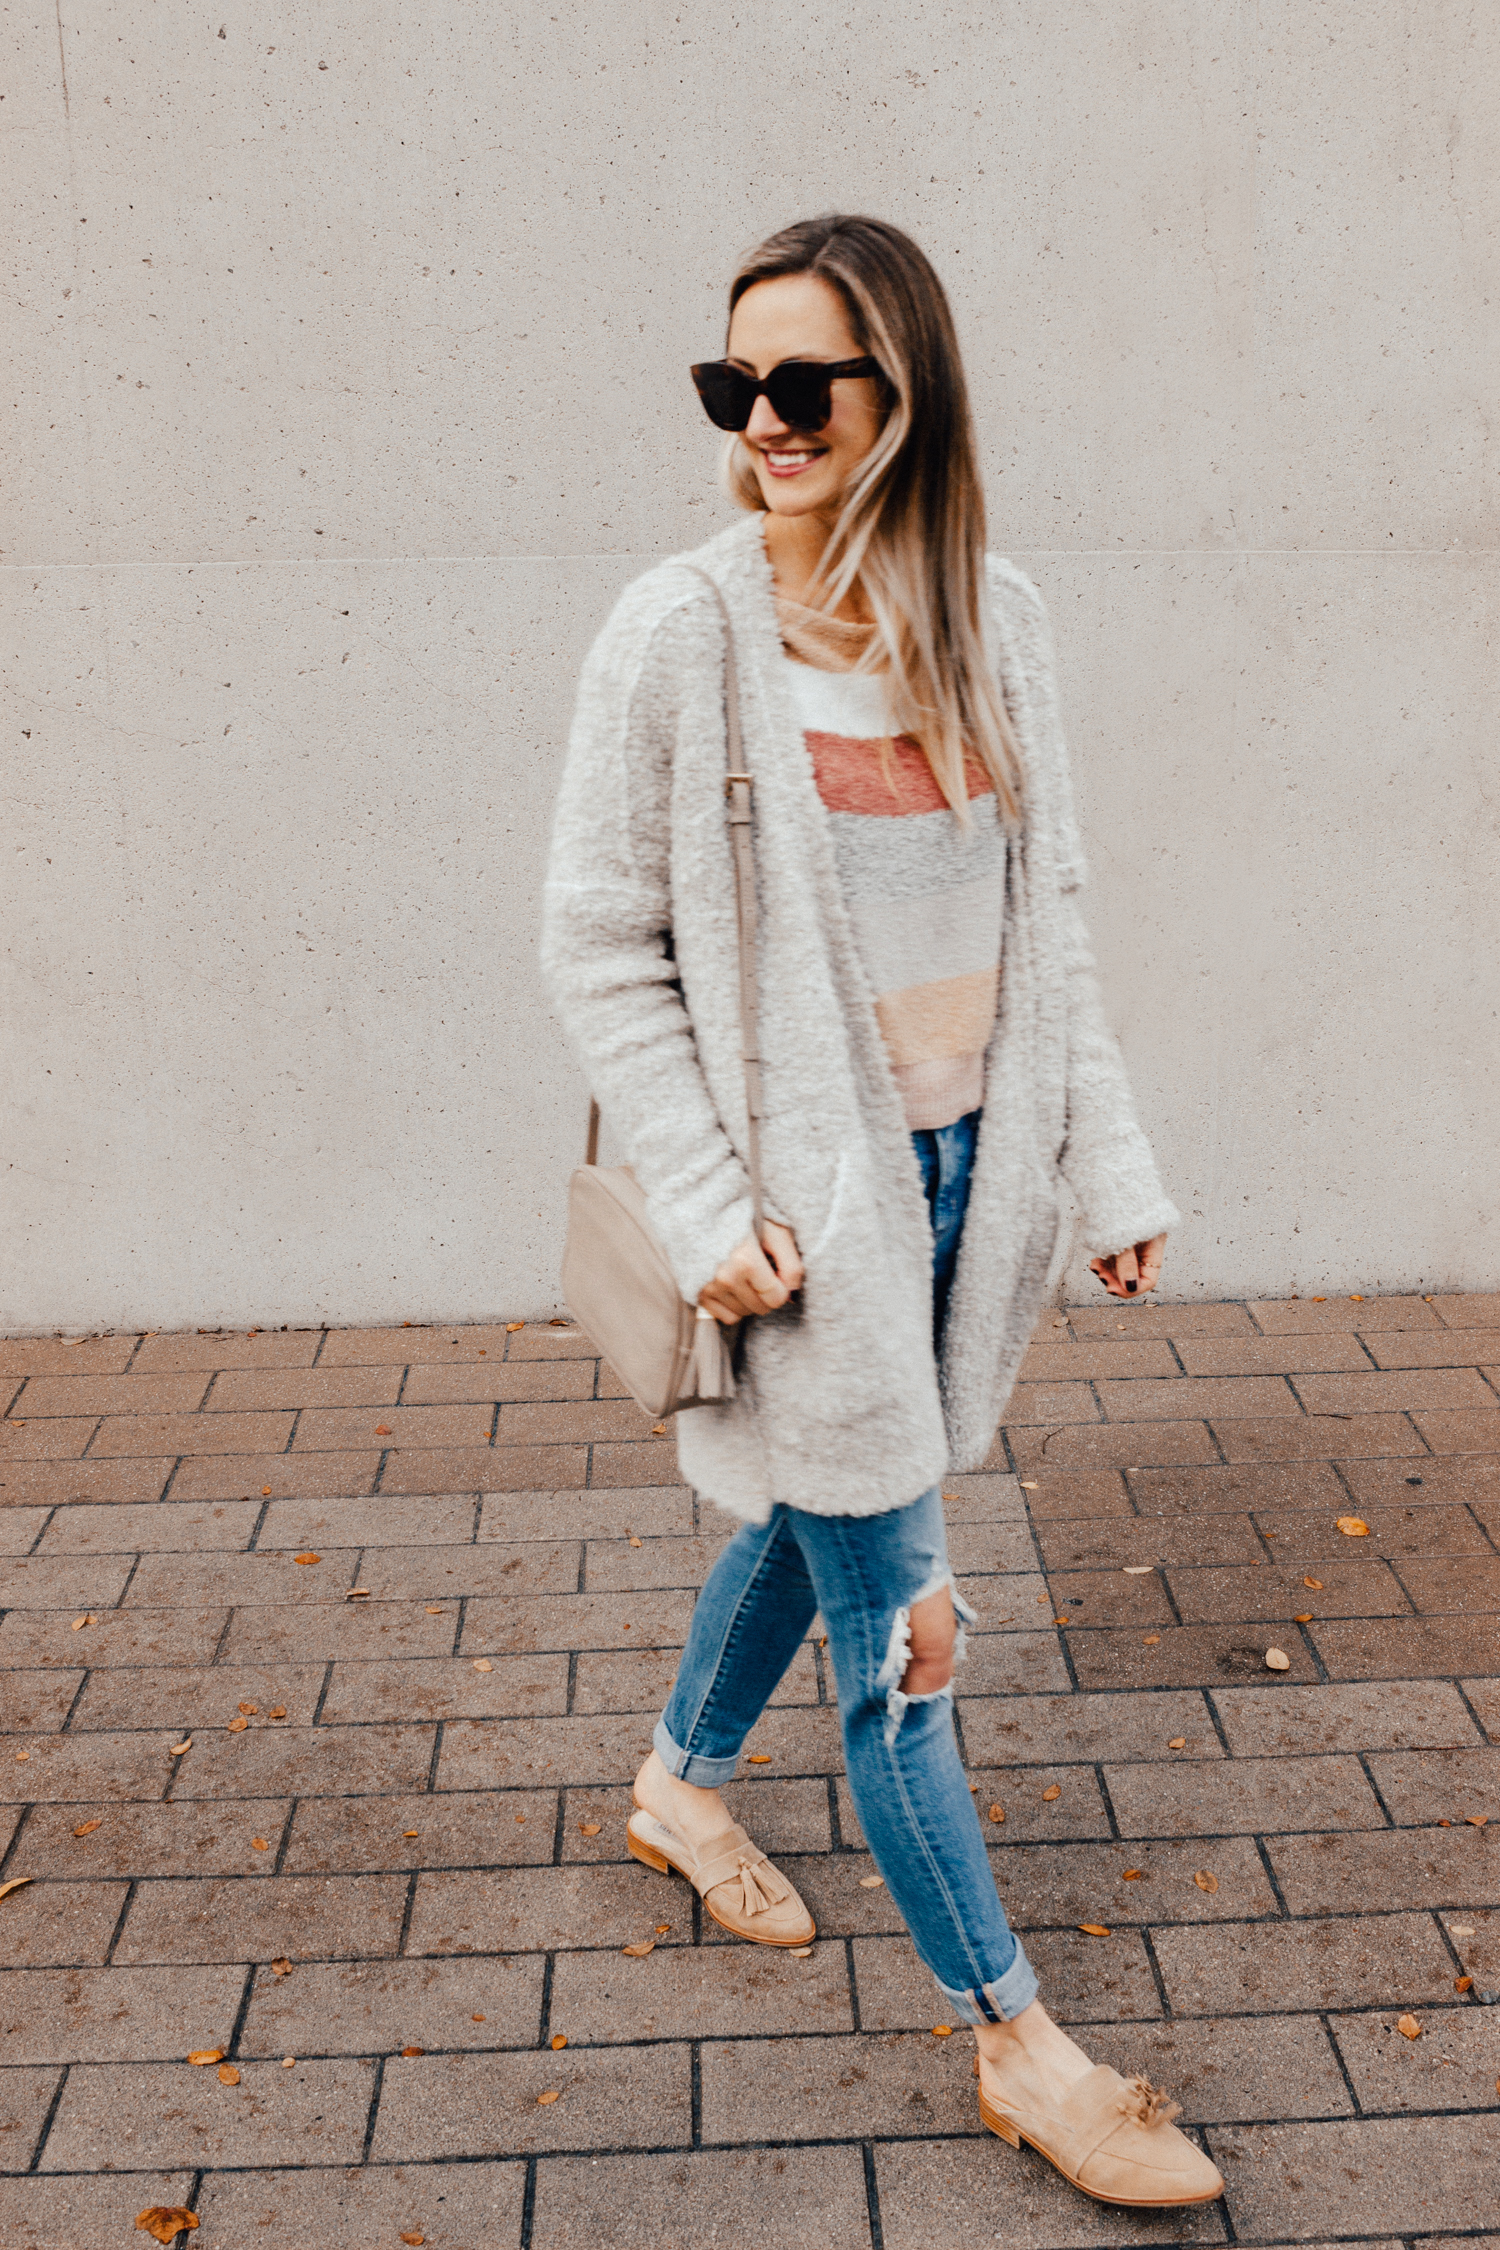 livvyland-blog-olivia-watson-free-people-blush-beige-tan-sweater-tassel-slides-cozy-layers-8